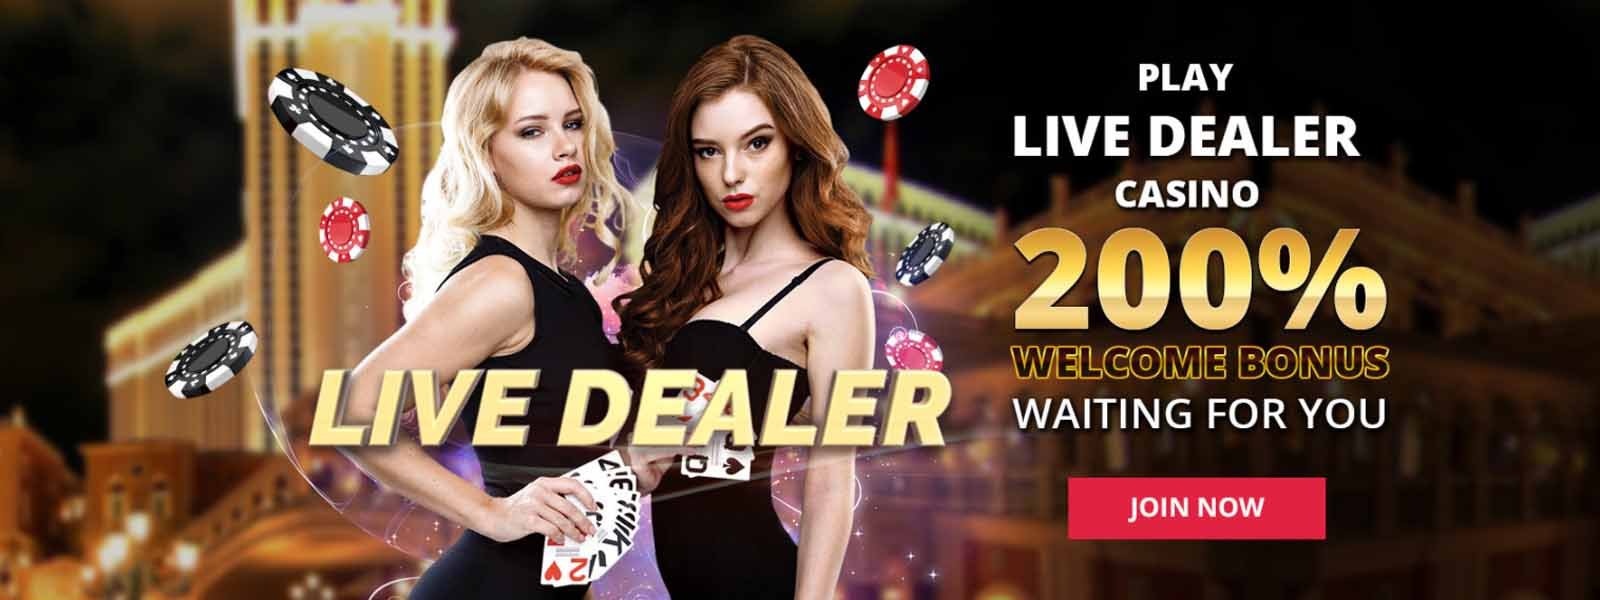 Casino Venetian Review live game